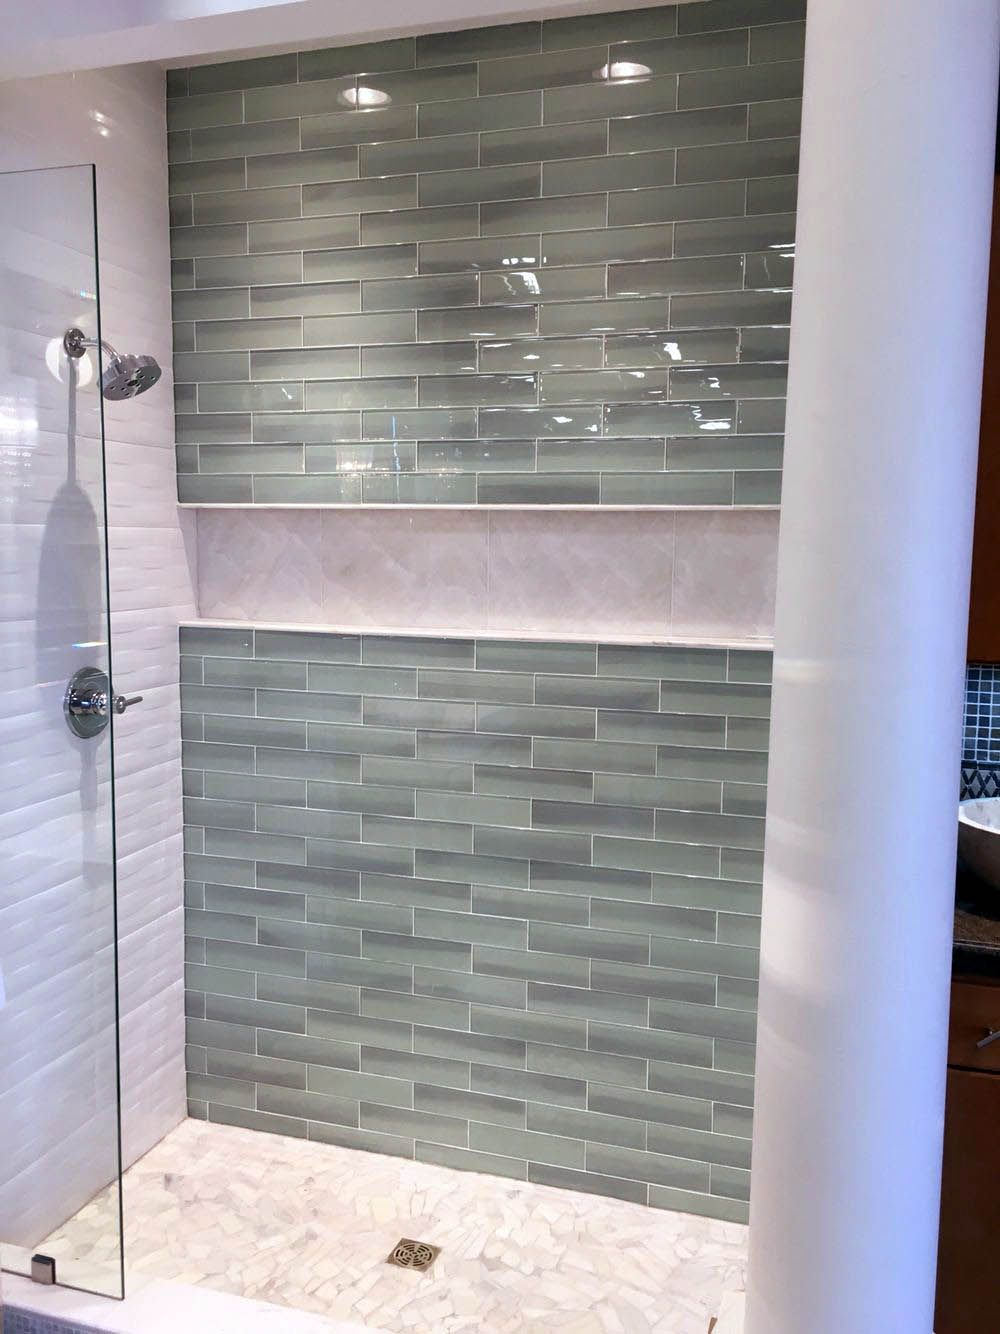 Finest Small Bathroom Tub Shower Tile Ideas Exclusive On Indoneso Home Decor Guest Bathroom Remodel Bathroom Tub Shower Shower Remodel